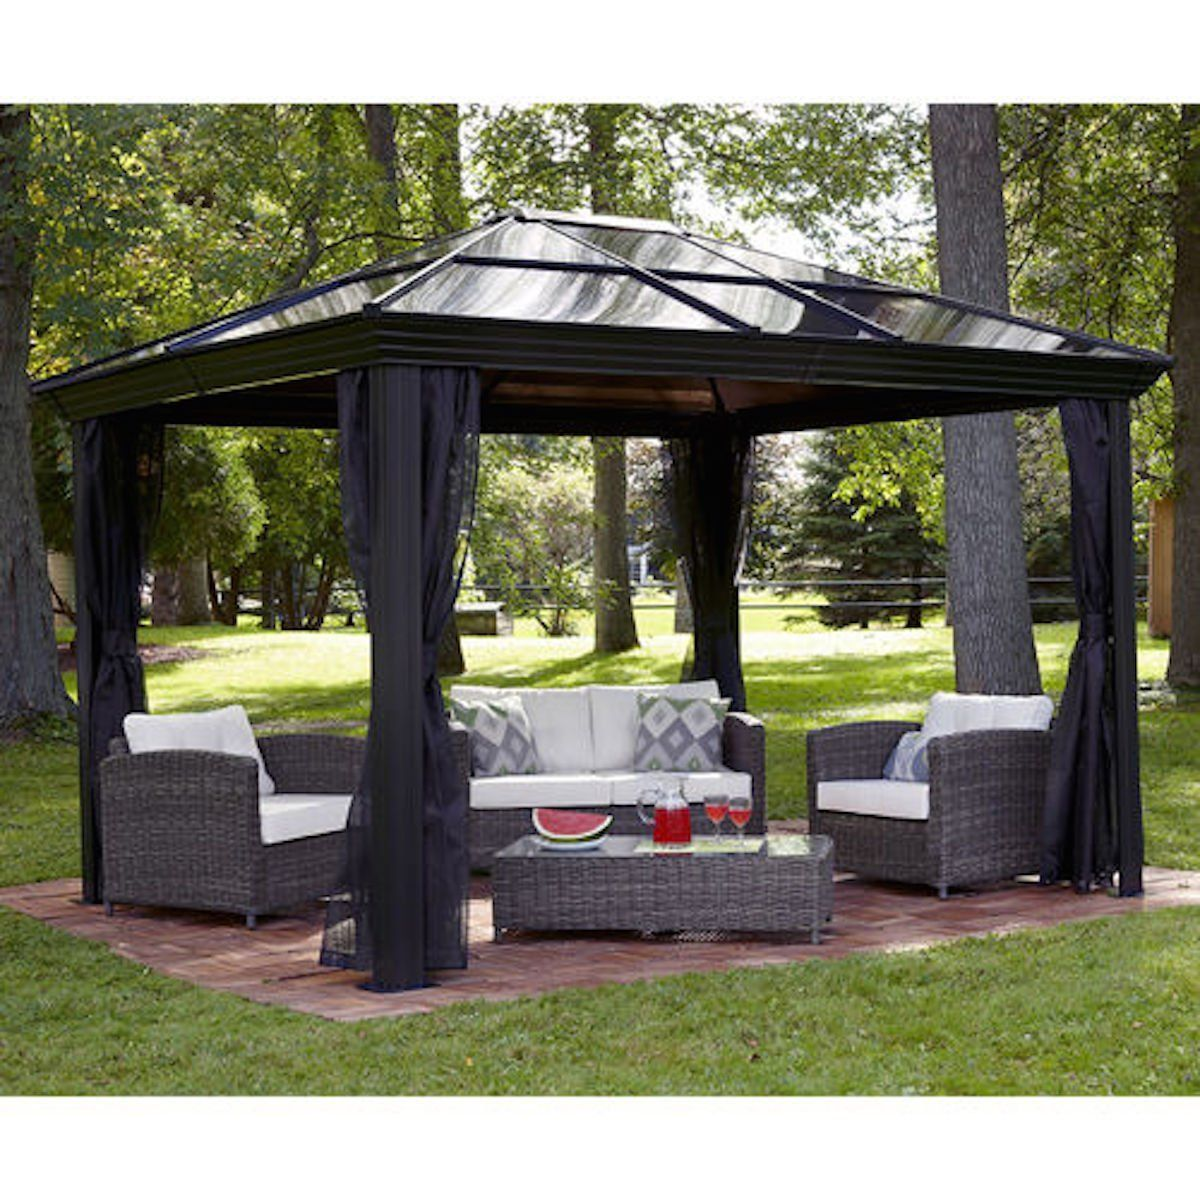 Gazebo Canopy Pergola This 10 X 12 Hardtop Tent Has A Metal Frame And Durable Polycarbonate Roof The Is Screened